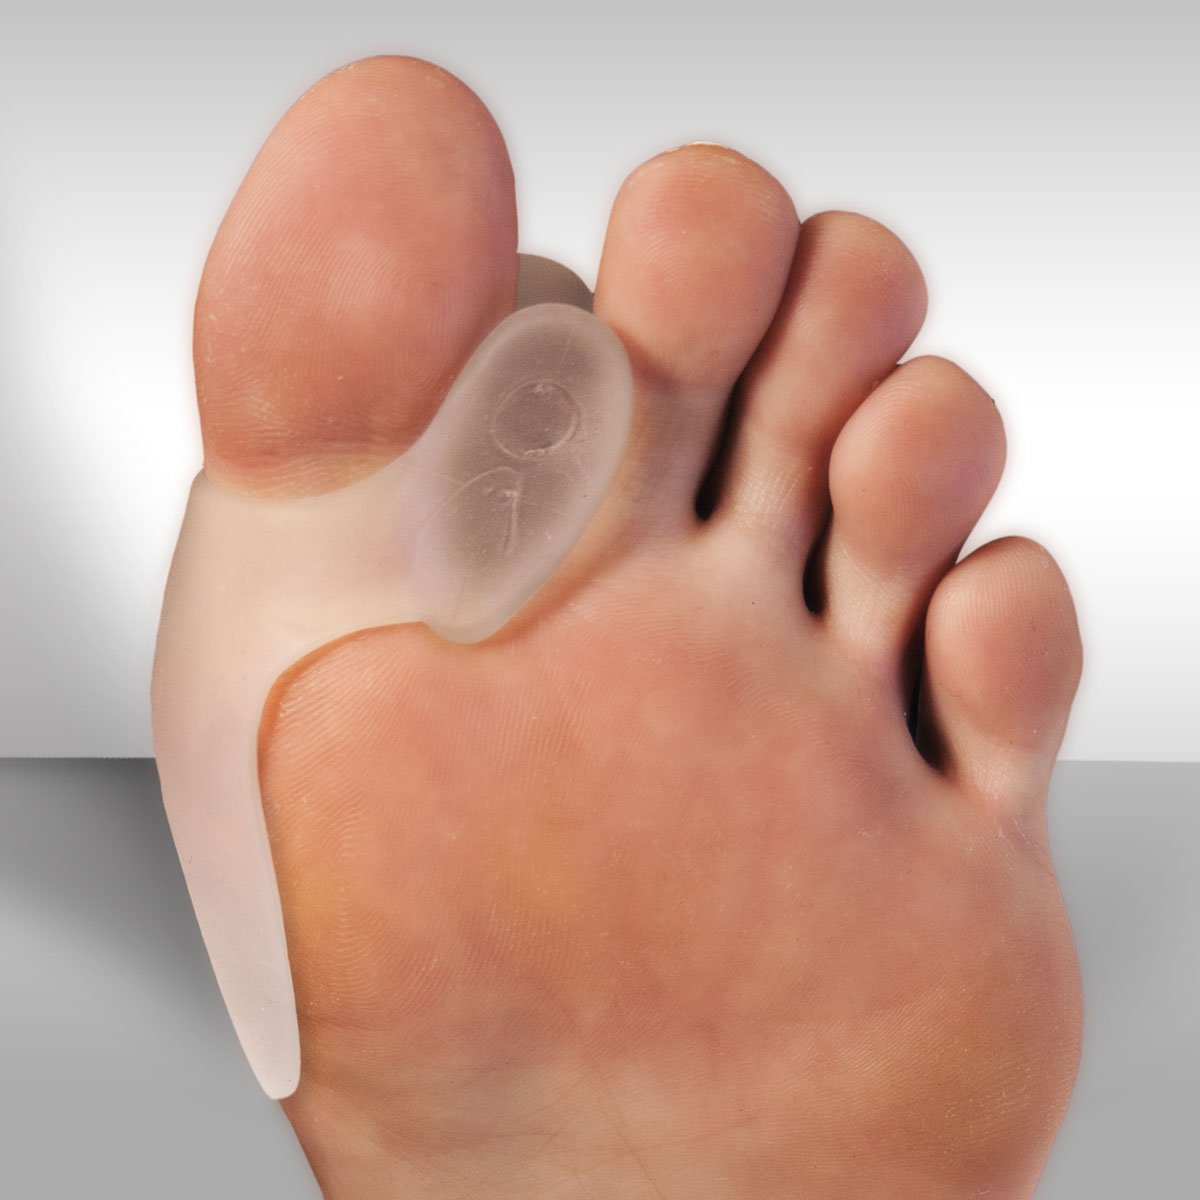 Toe Spacer - Bunion Guard Combo